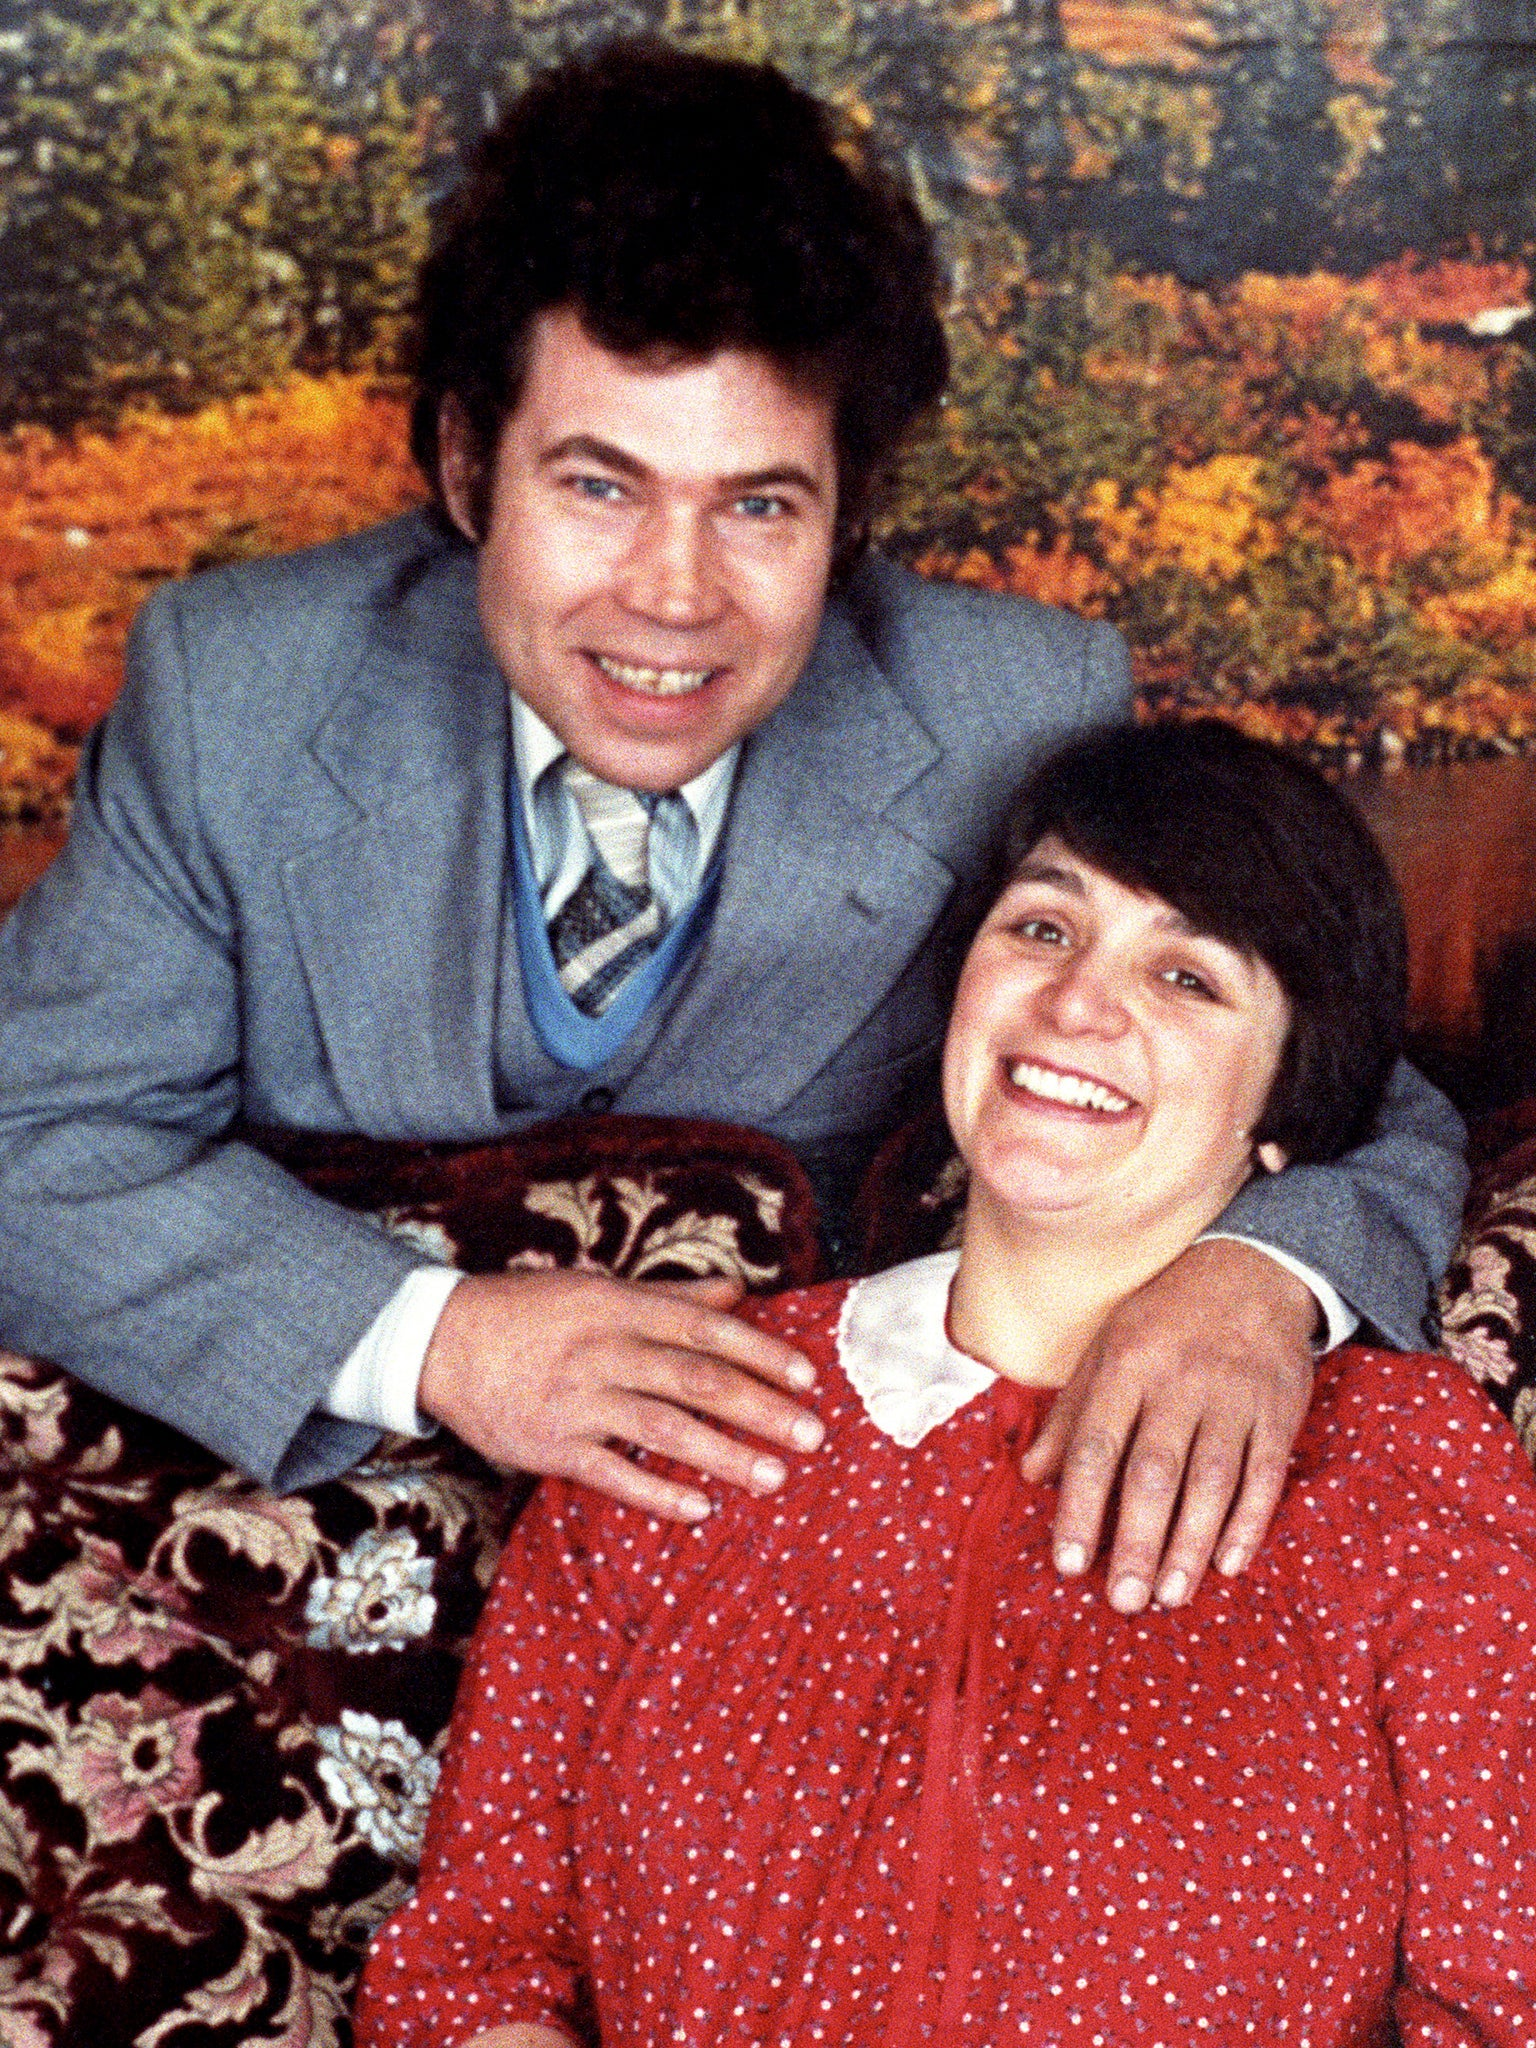 Fred West's daughter reveals how she unwittingly played fancy dress